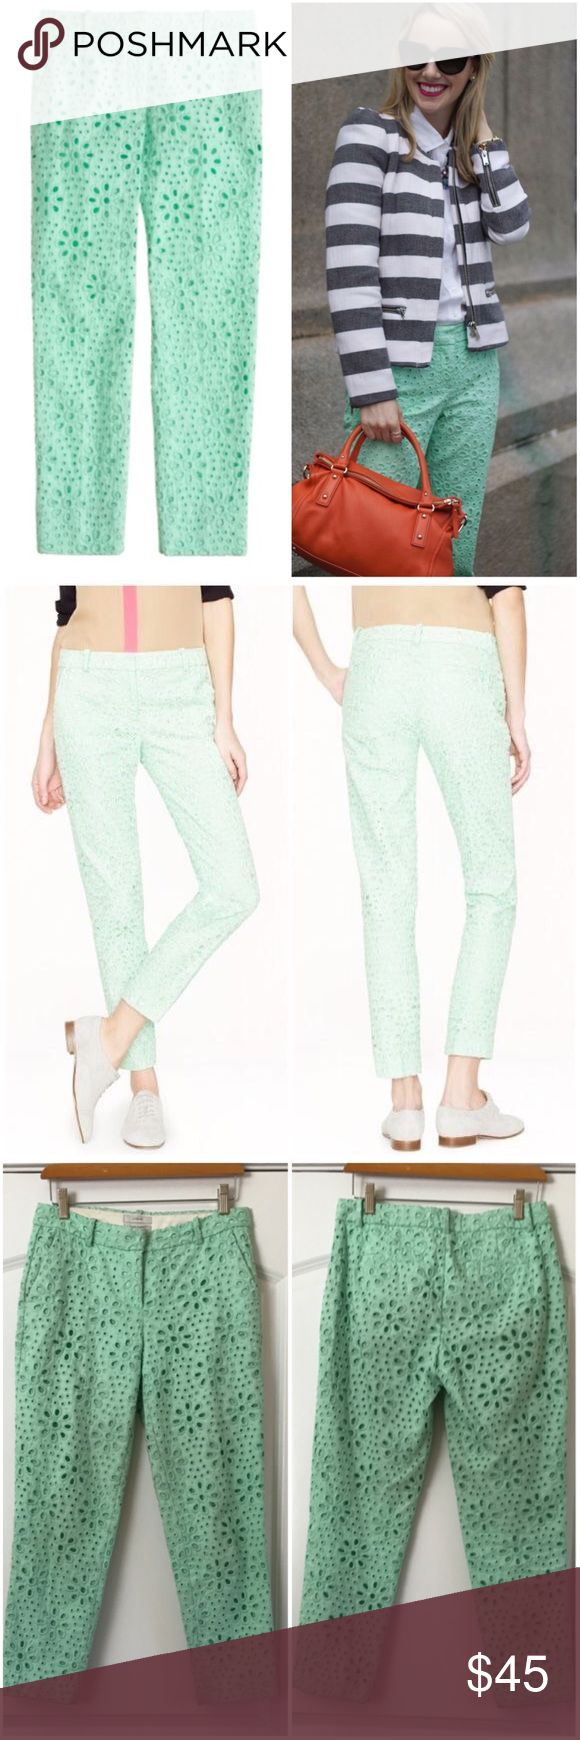 """J. Crew Cafe Capri Pinwheel Eyelet Mint Green Pant Adorable J. Crew cafe Capri Lace pants. Beautiful sea foam color. Eyelet Lace exterior for added texture. In perfect condition. Two hip pockets and two pack pockets. Inseam 24.5"""" Across waist 15"""" J. Crew Pants Ankle & Cropped"""